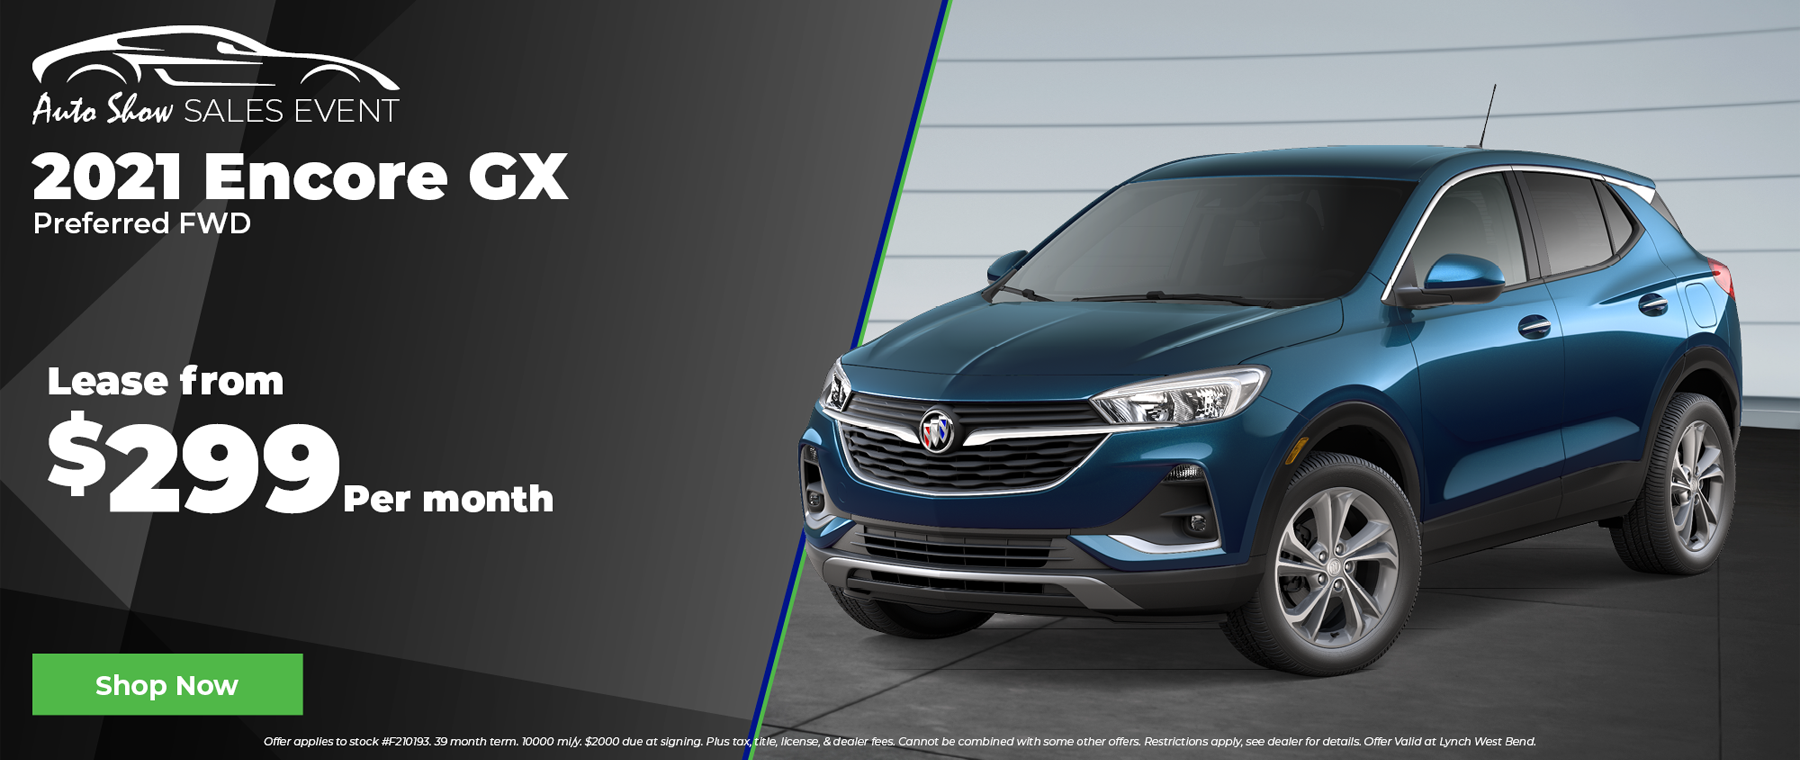 New Buick Encore GX for $299 per month in West Bend Wisconsin